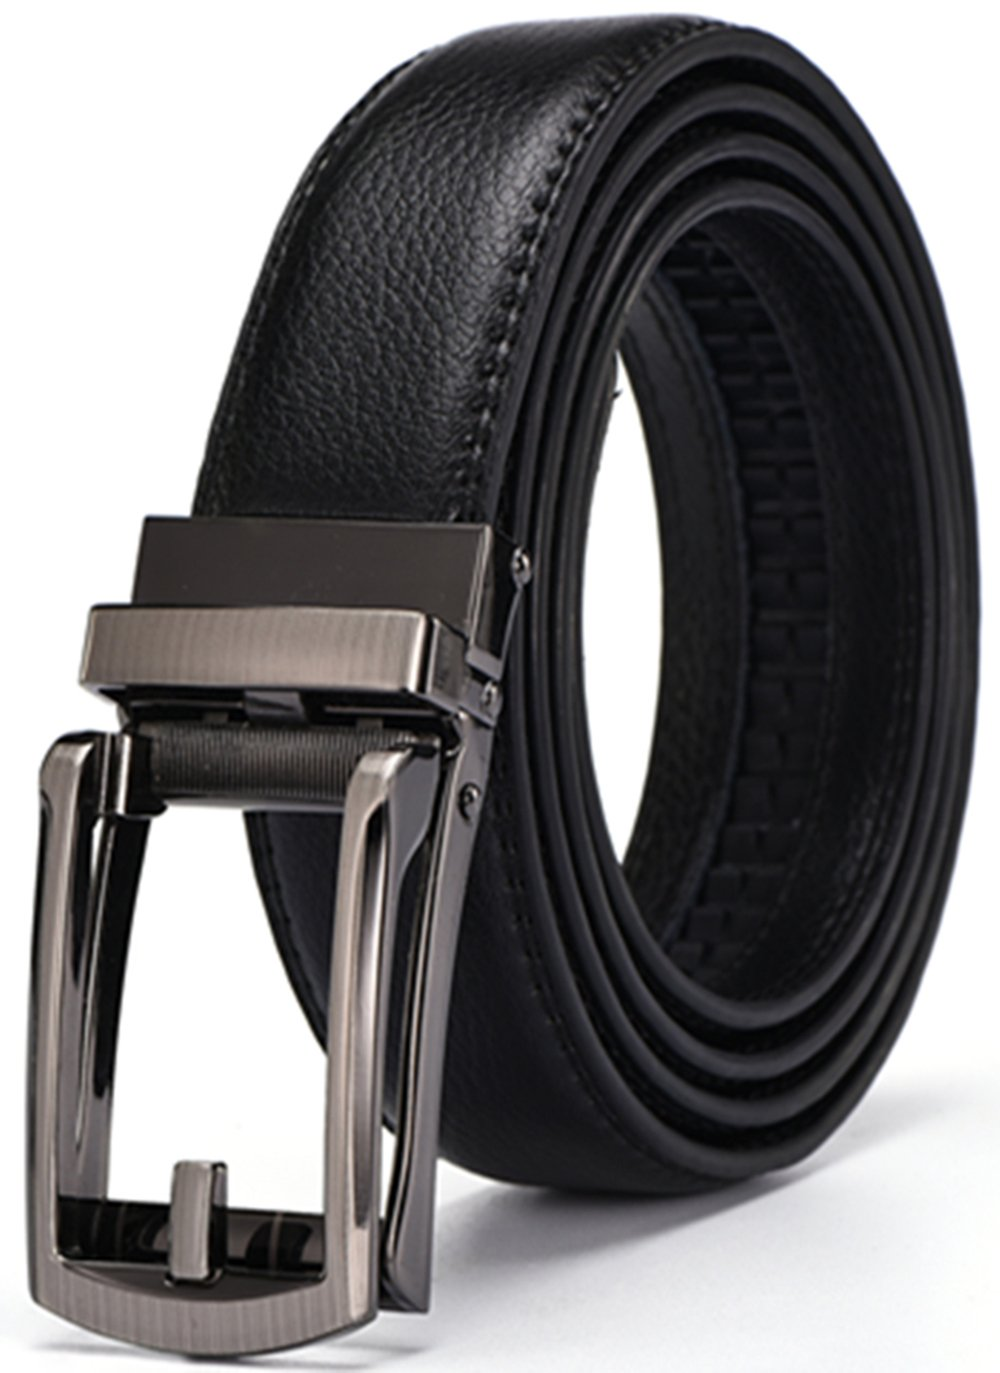 XQMART Men's Real Leather Ratchet Dress Belt with Buckle Elegant Gift Box (Up to 43'' Waist, Black4)